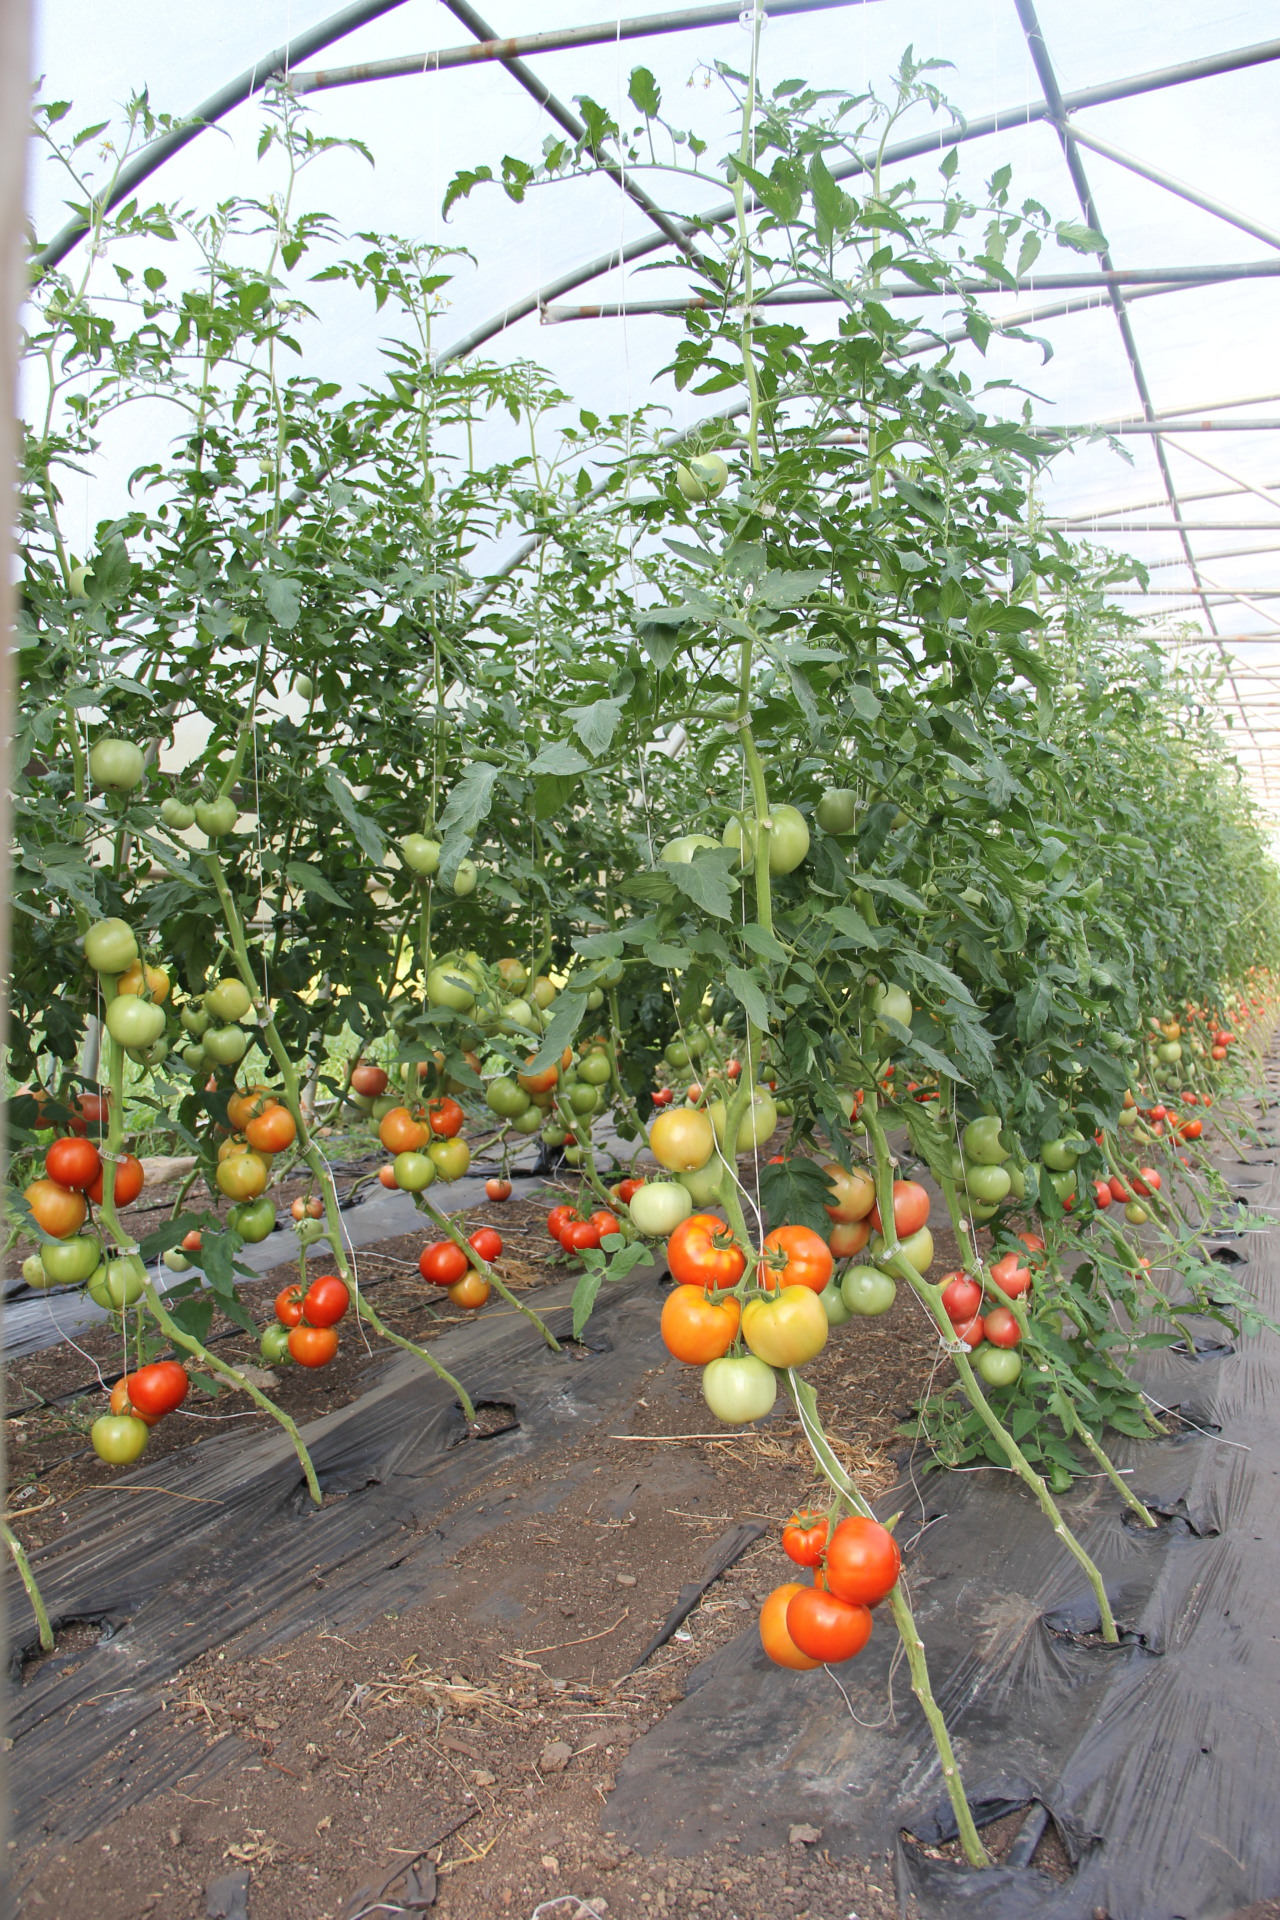 We grow tomatoes in our hoop houses to avoid disease pressure.